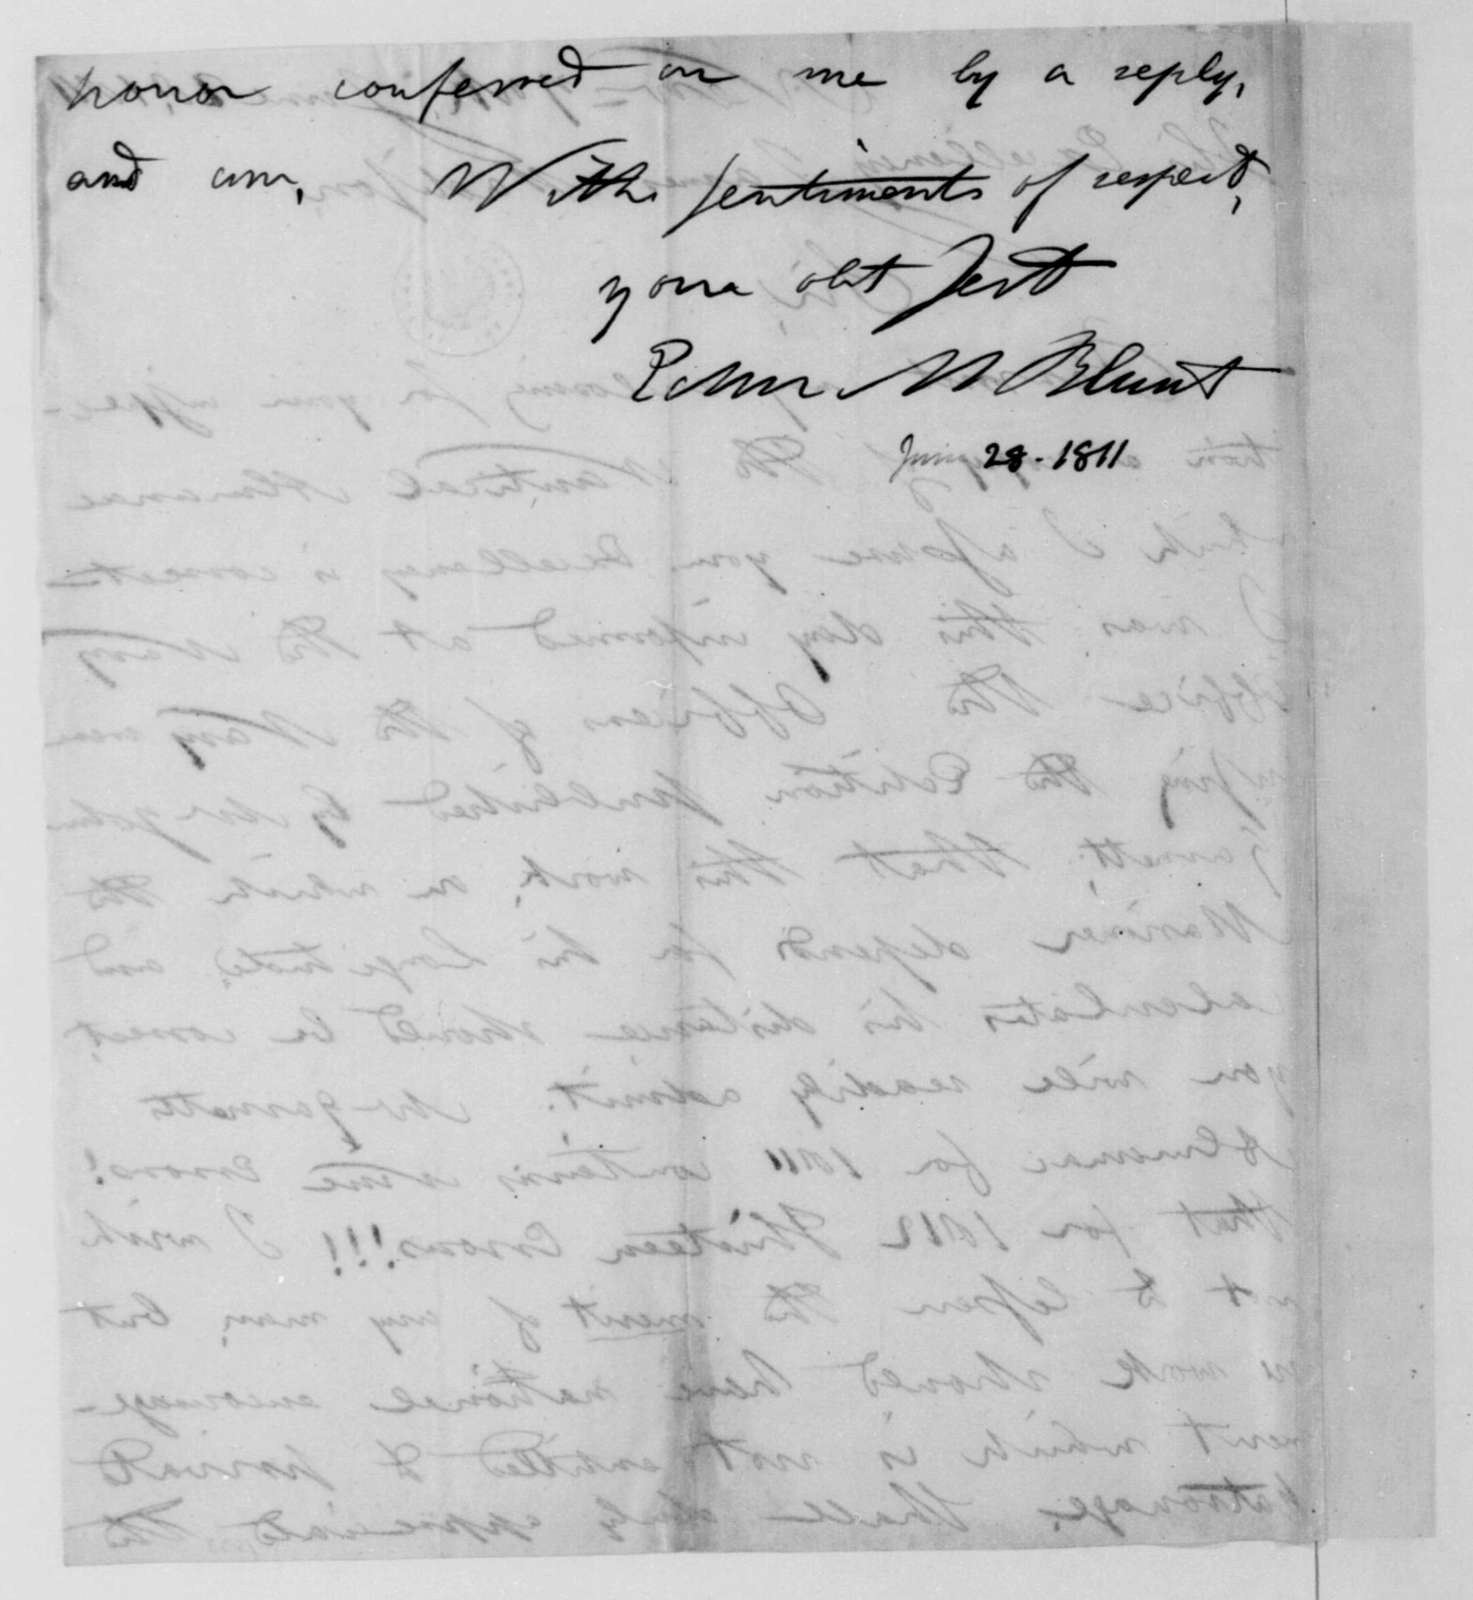 E. M. Blunt to James Madison, June 28, 1811.